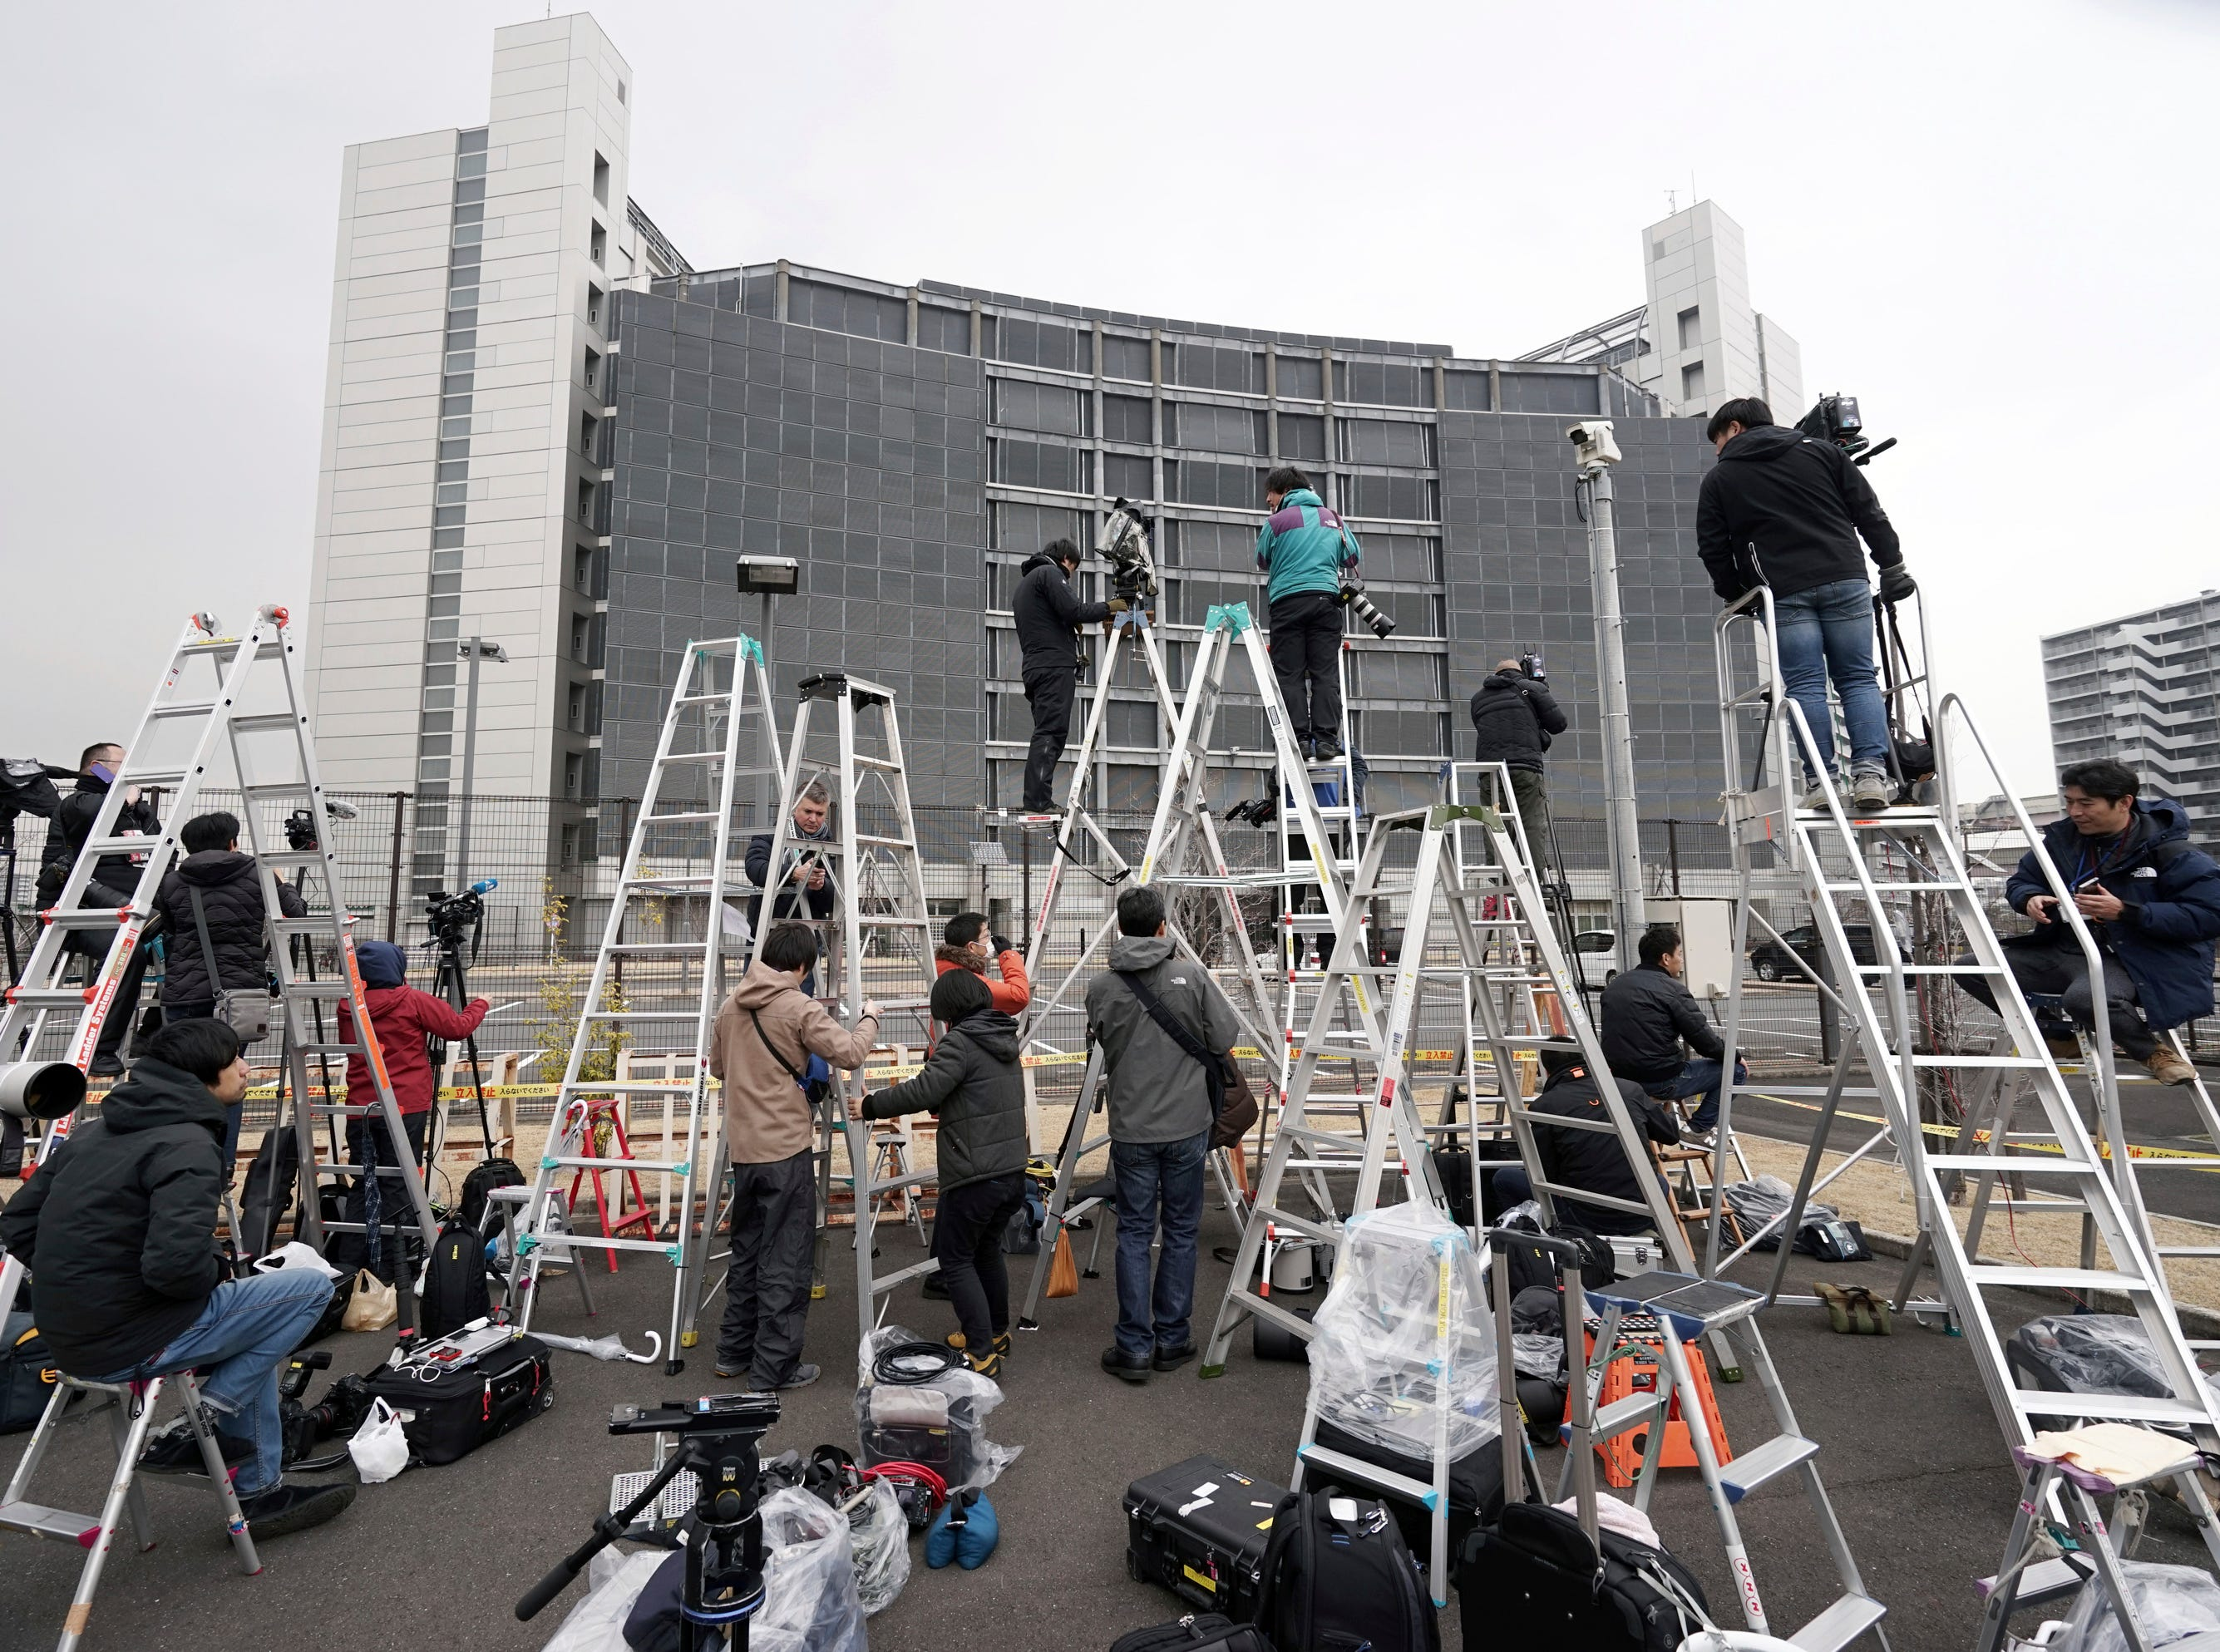 Step ladders placed by photographers and cameramen are seen in front of Tokyo Detention Center, where former Nissan Chairman Carlos Ghosn is detained, Wednesday, March 6, 2019, in Tokyo. (AP Photo/Eugene Hoshiko)